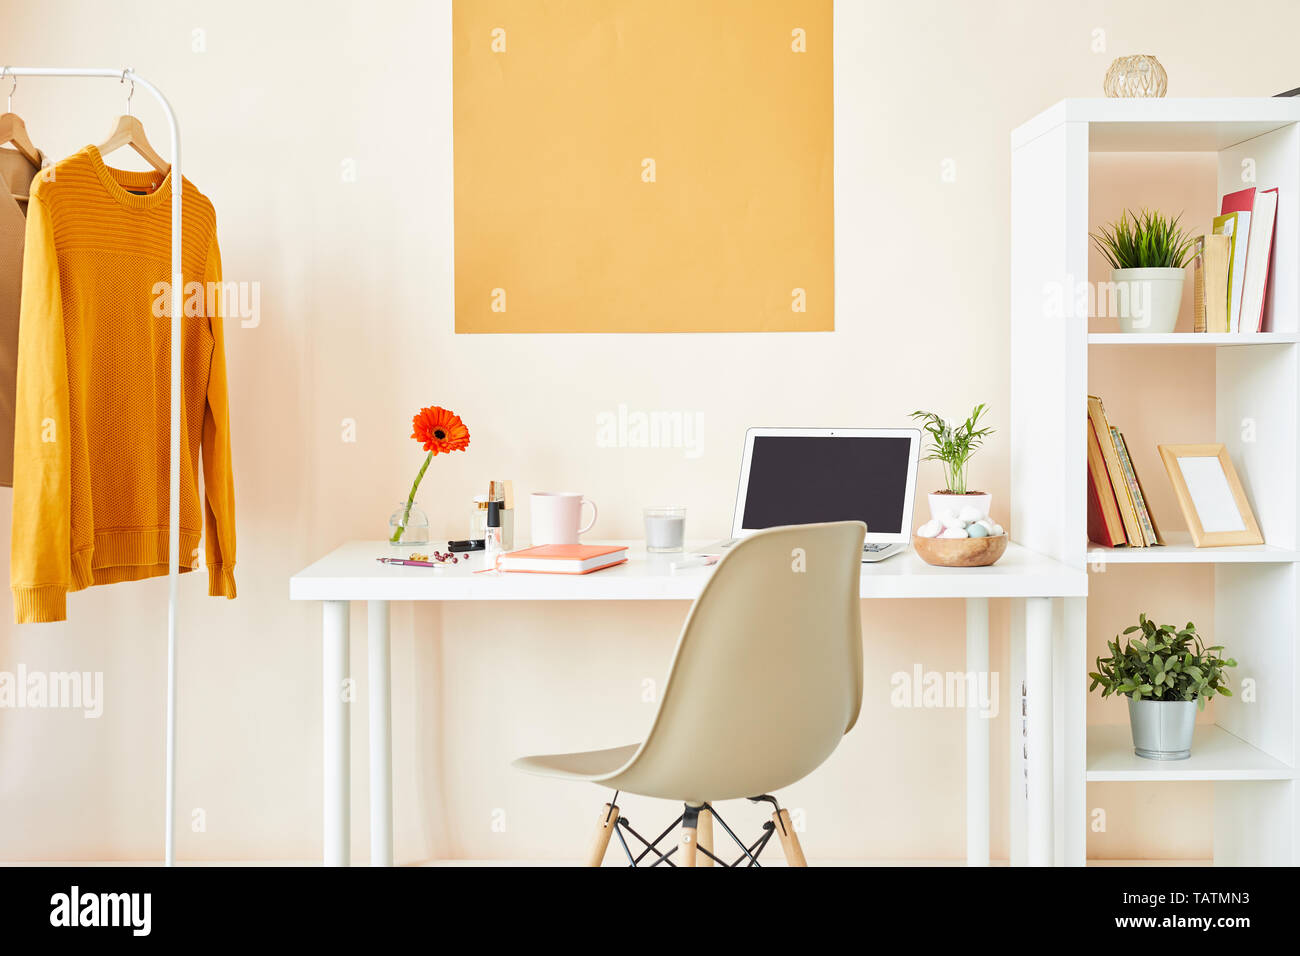 Workplace of creative employee or designer with desk by wall, white chair, furniture with stuff and casualwear on hangers - Stock Image